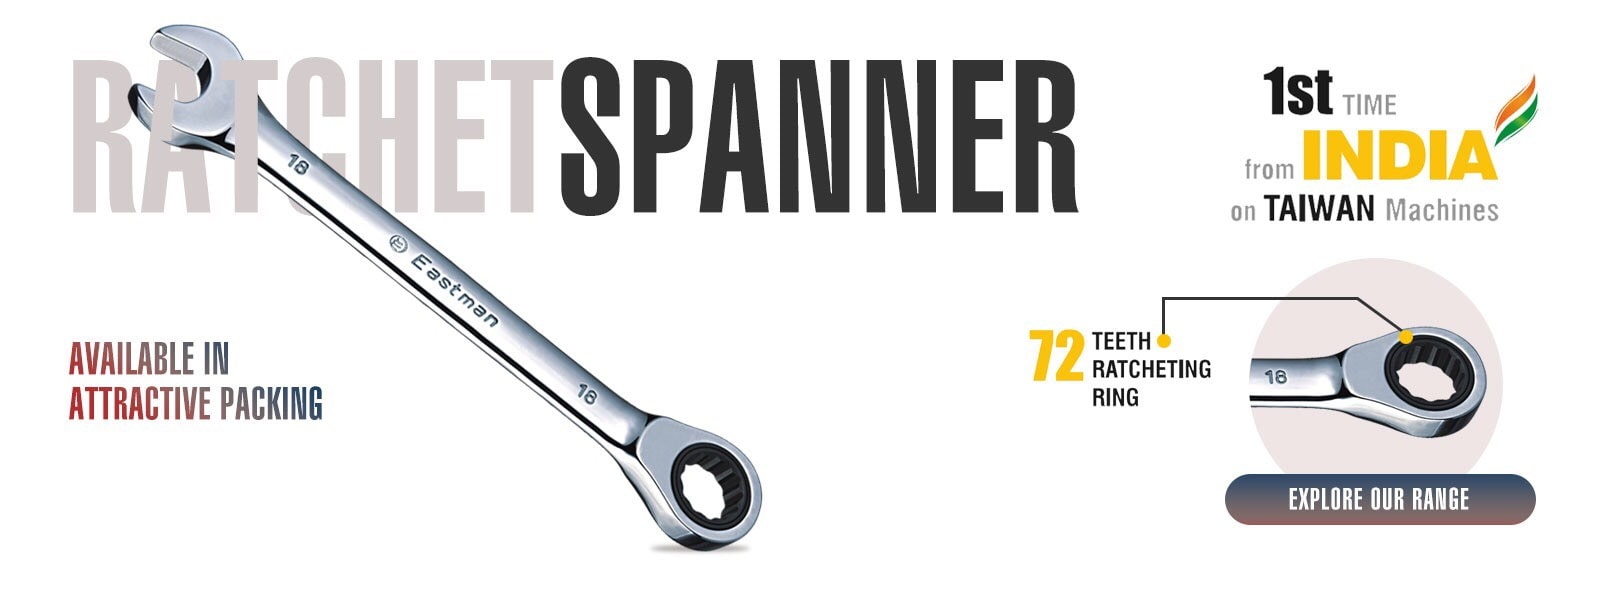 Ratchet spanner